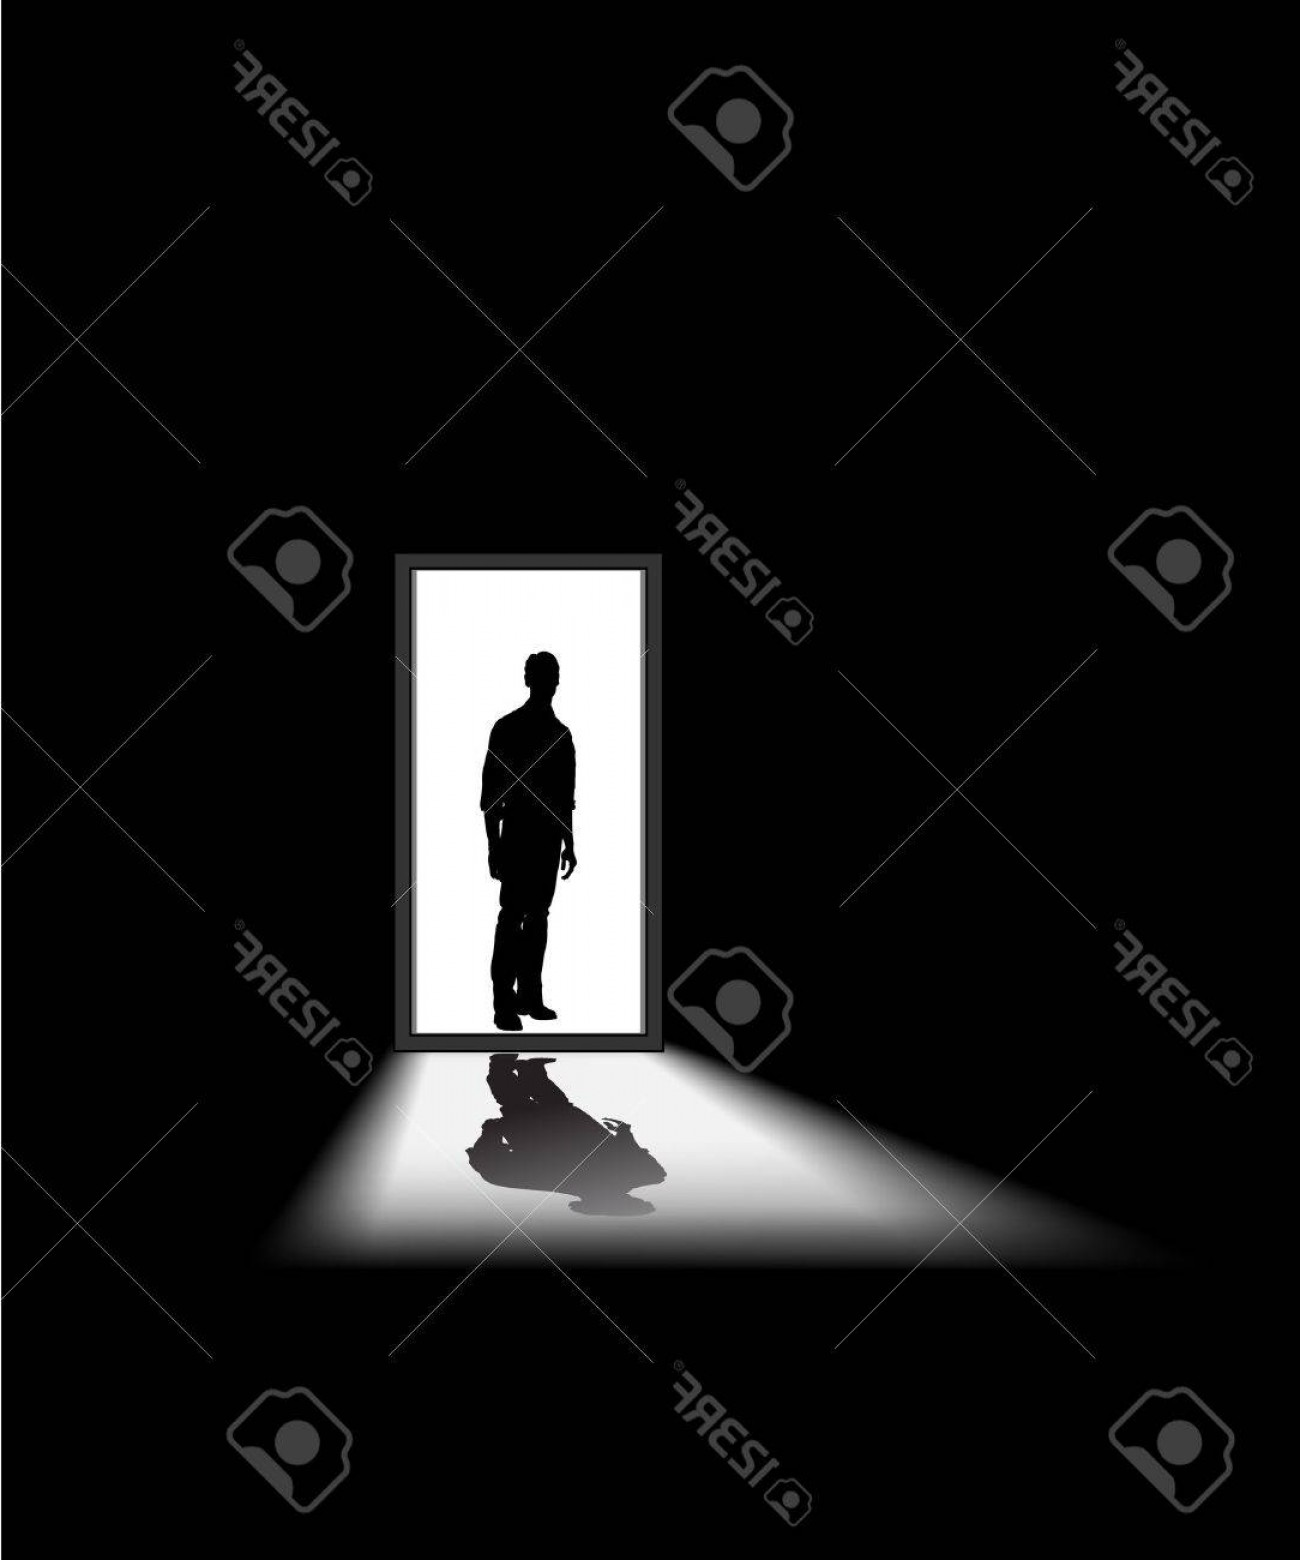 Vectorman Darkness: Photoman Enters A Dark Room To Illustrate Concept Of Unknown And Fear